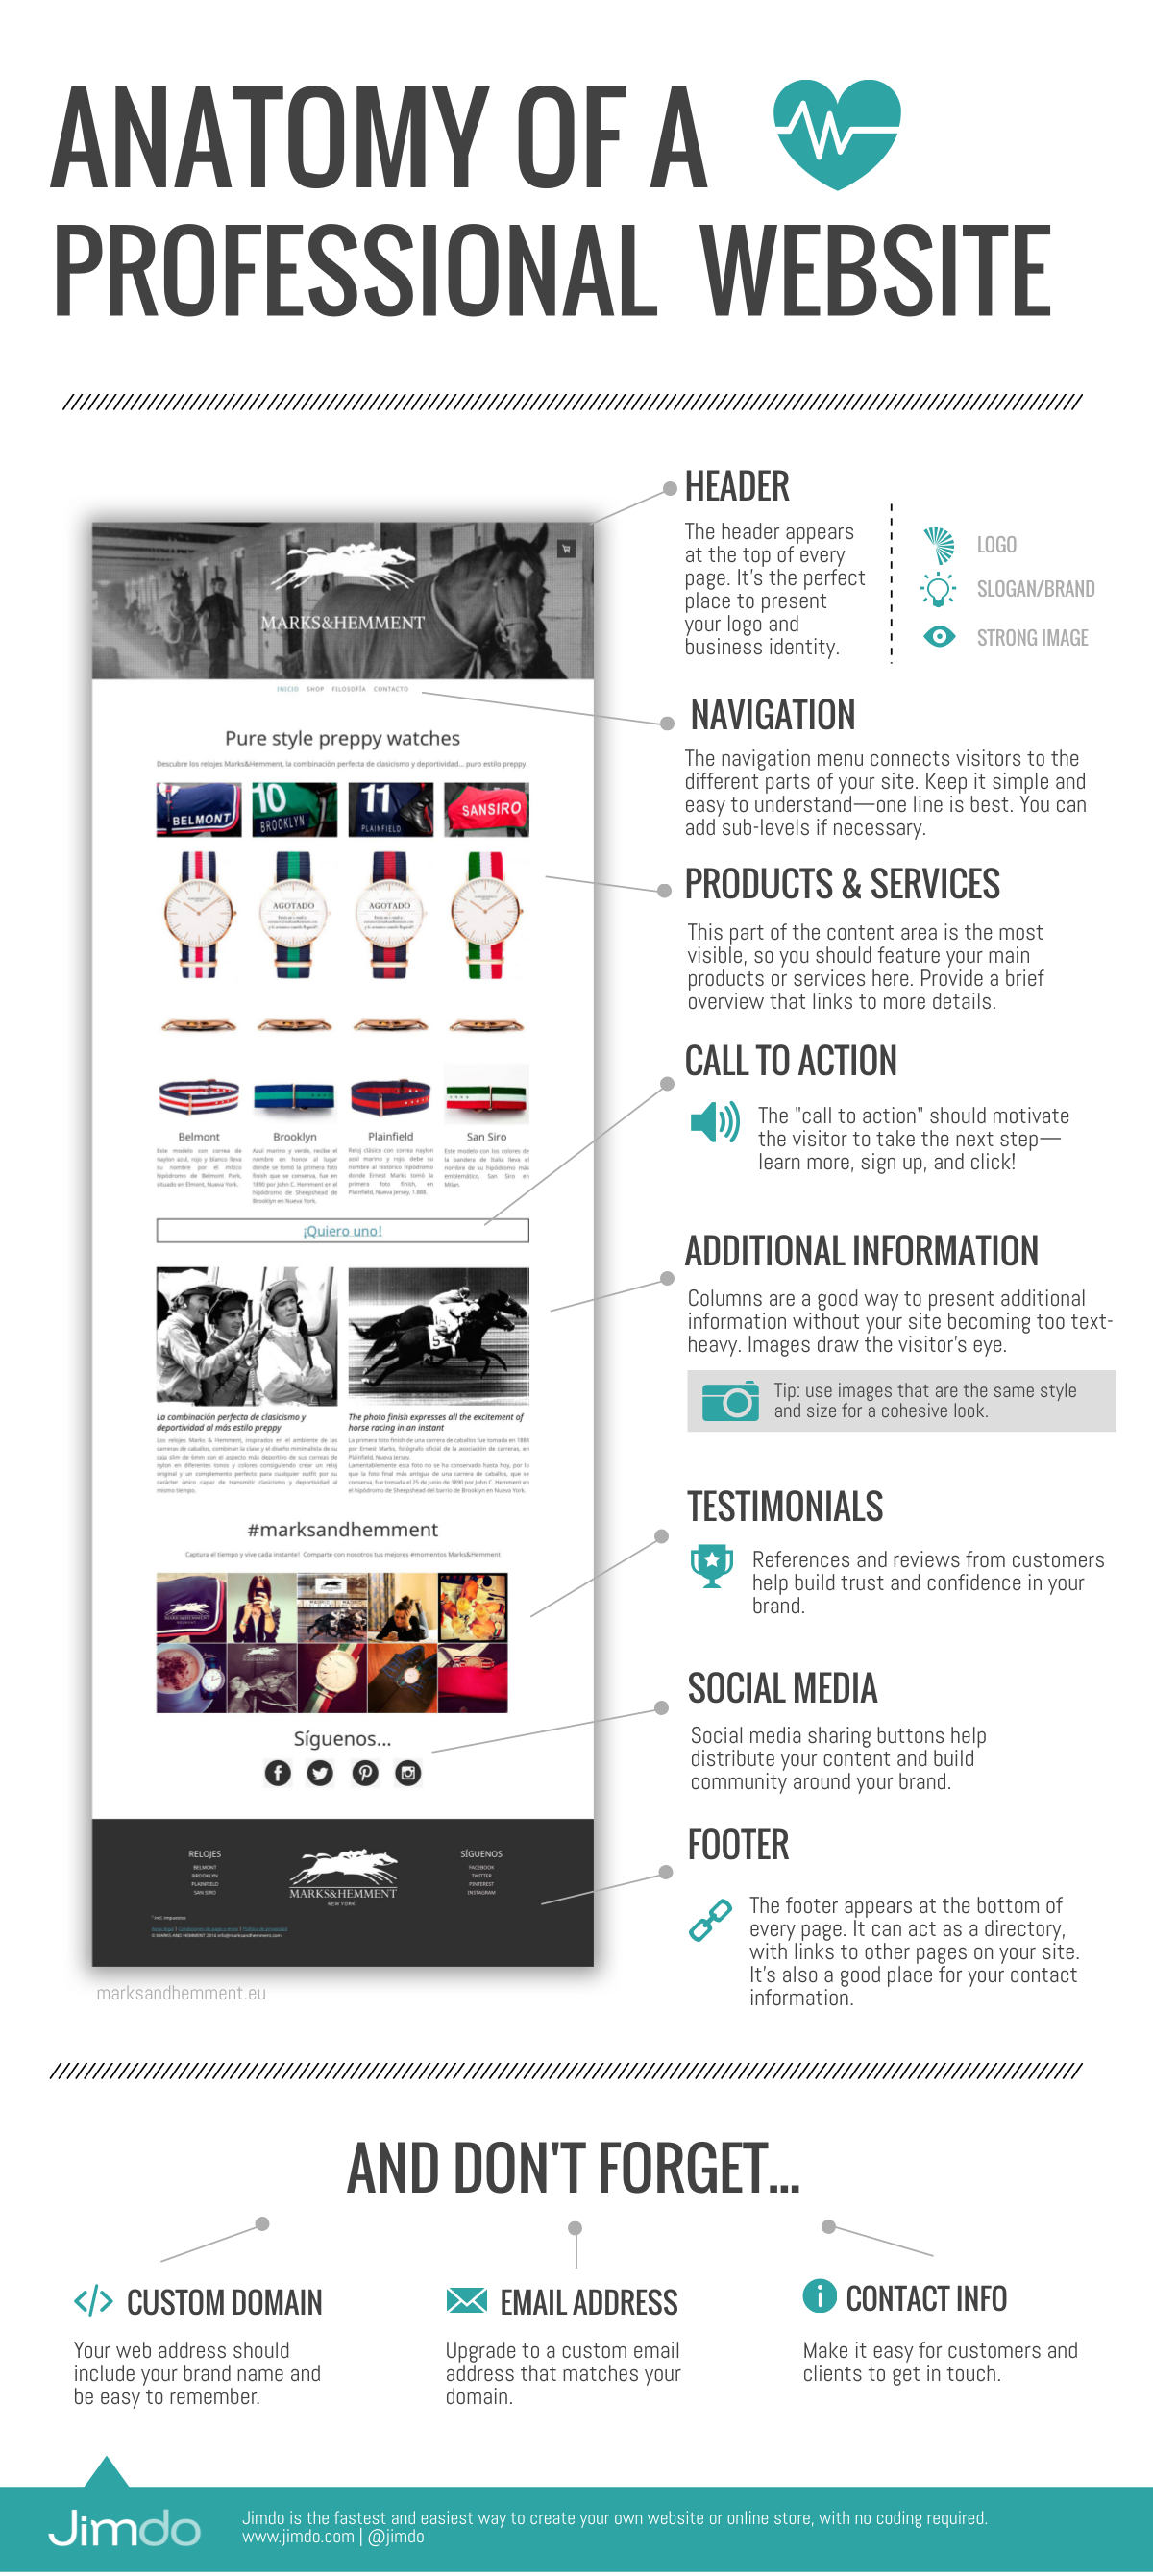 Anatomy of A Professional Website - Jimdo.com | Graphic Design ...